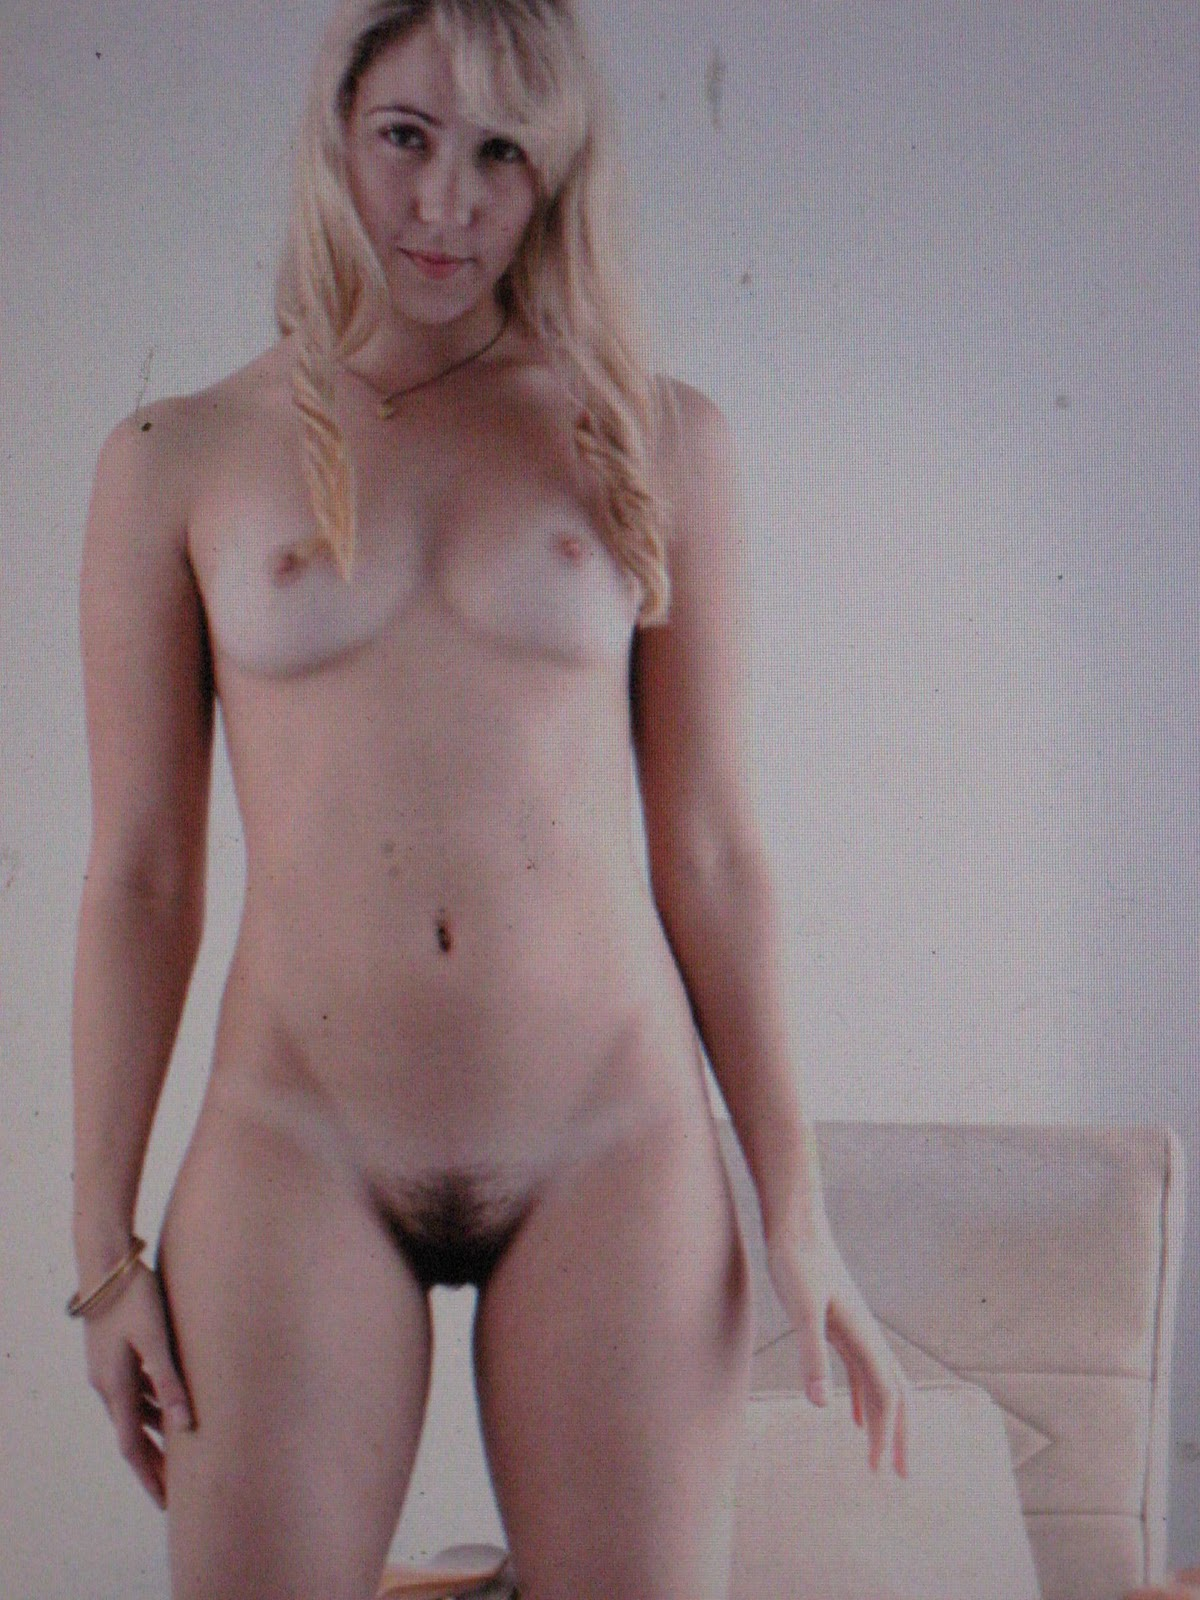 Normal Teen Nude